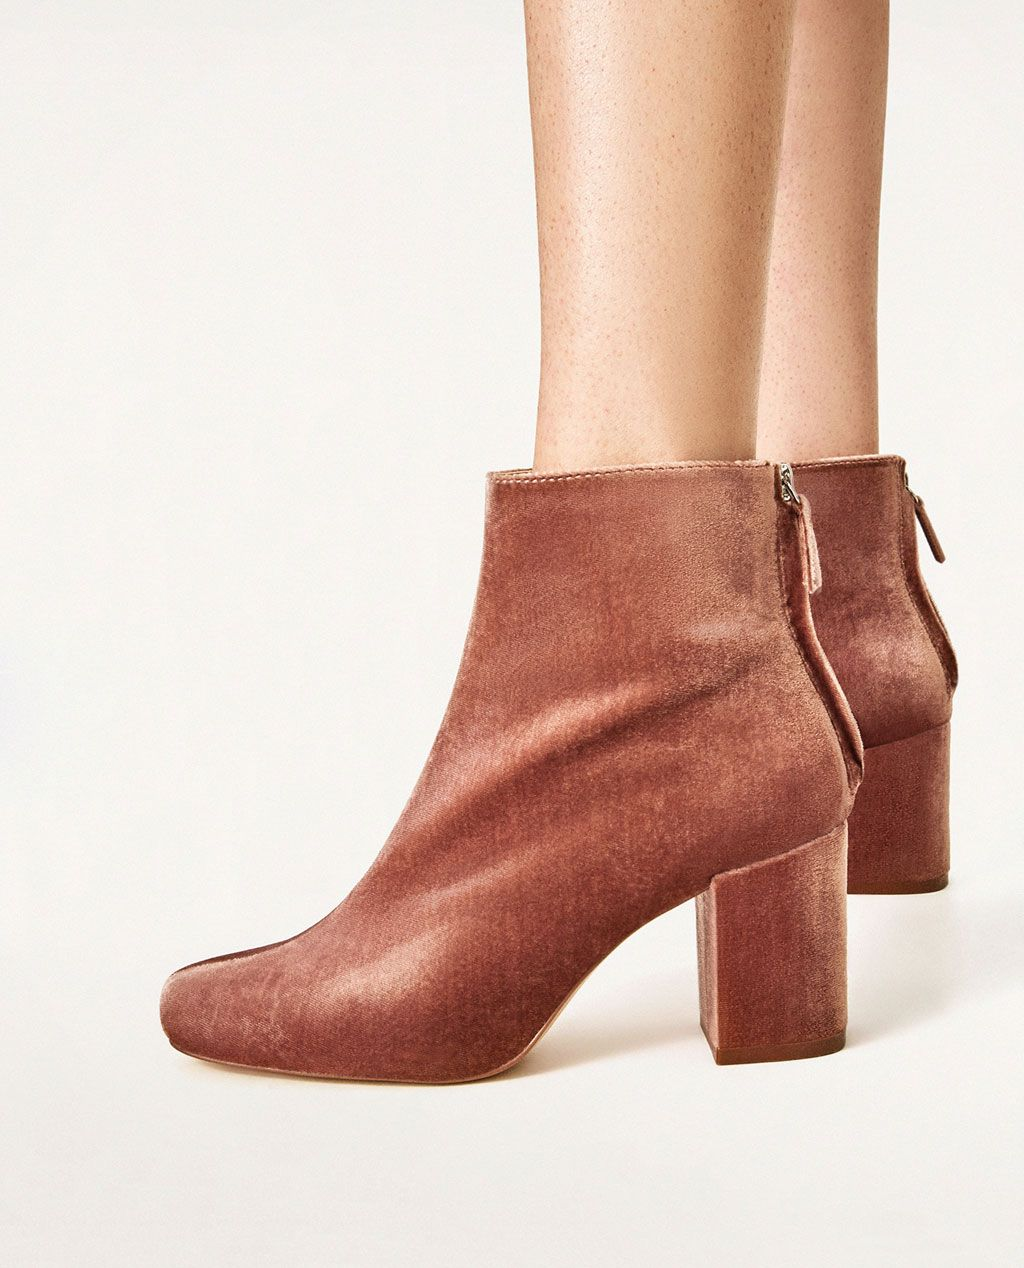 e1a11445192 HIGH HEEL VELVET ANKLE BOOTS-View all-SHOES-WOMAN